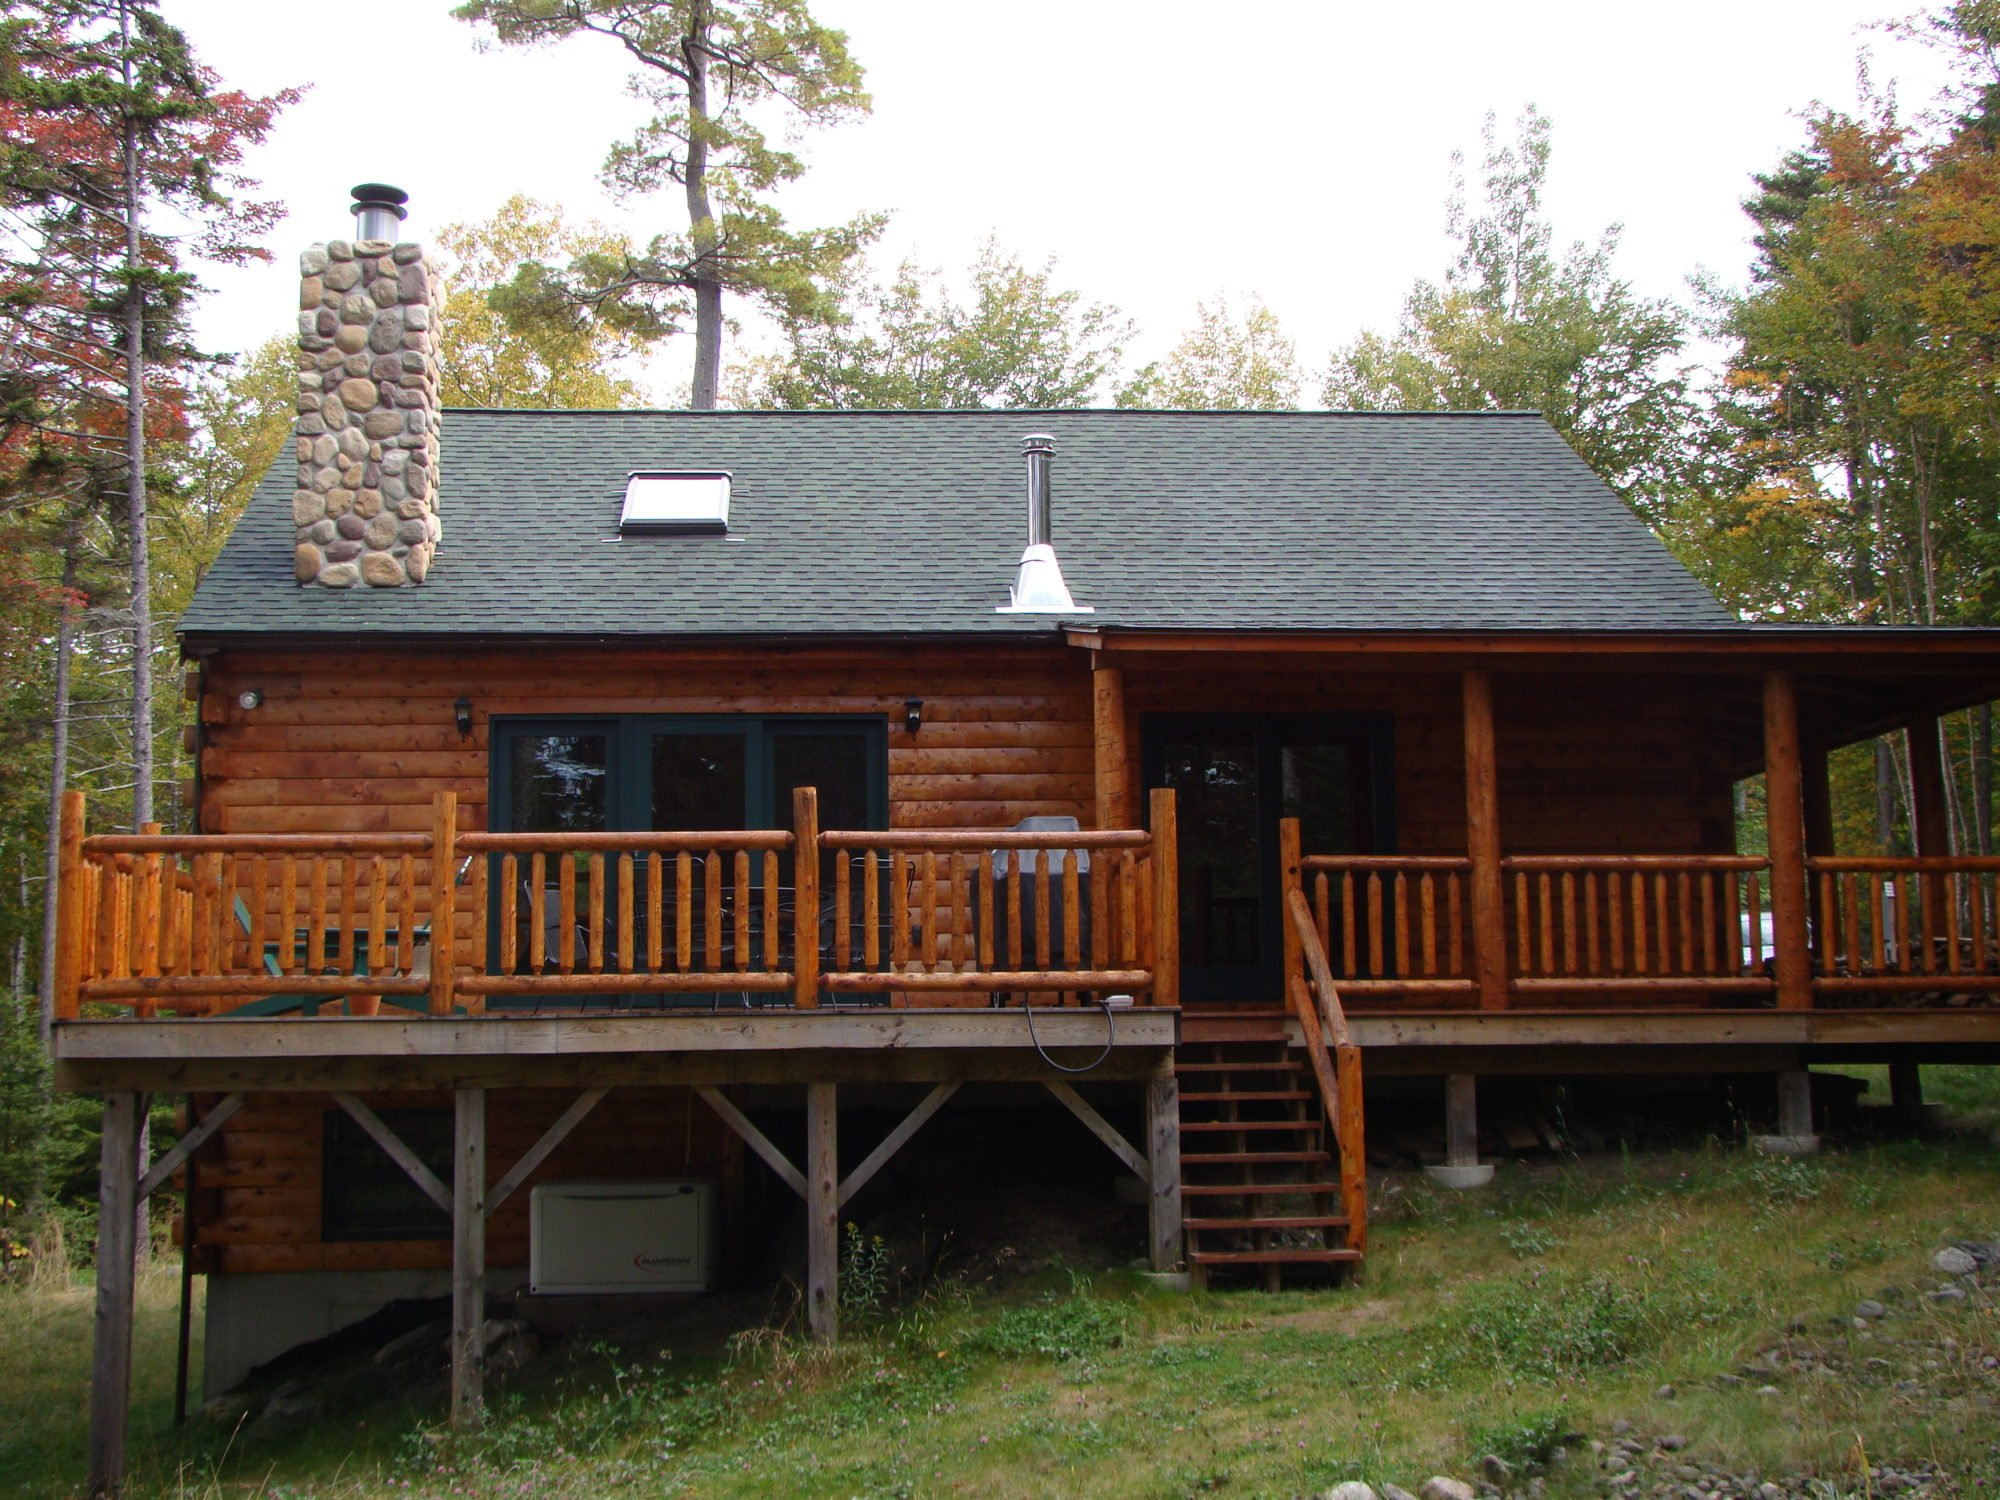 Moosehead hills cabins rustic luxury log cabin rentals for Rustic hotels near me